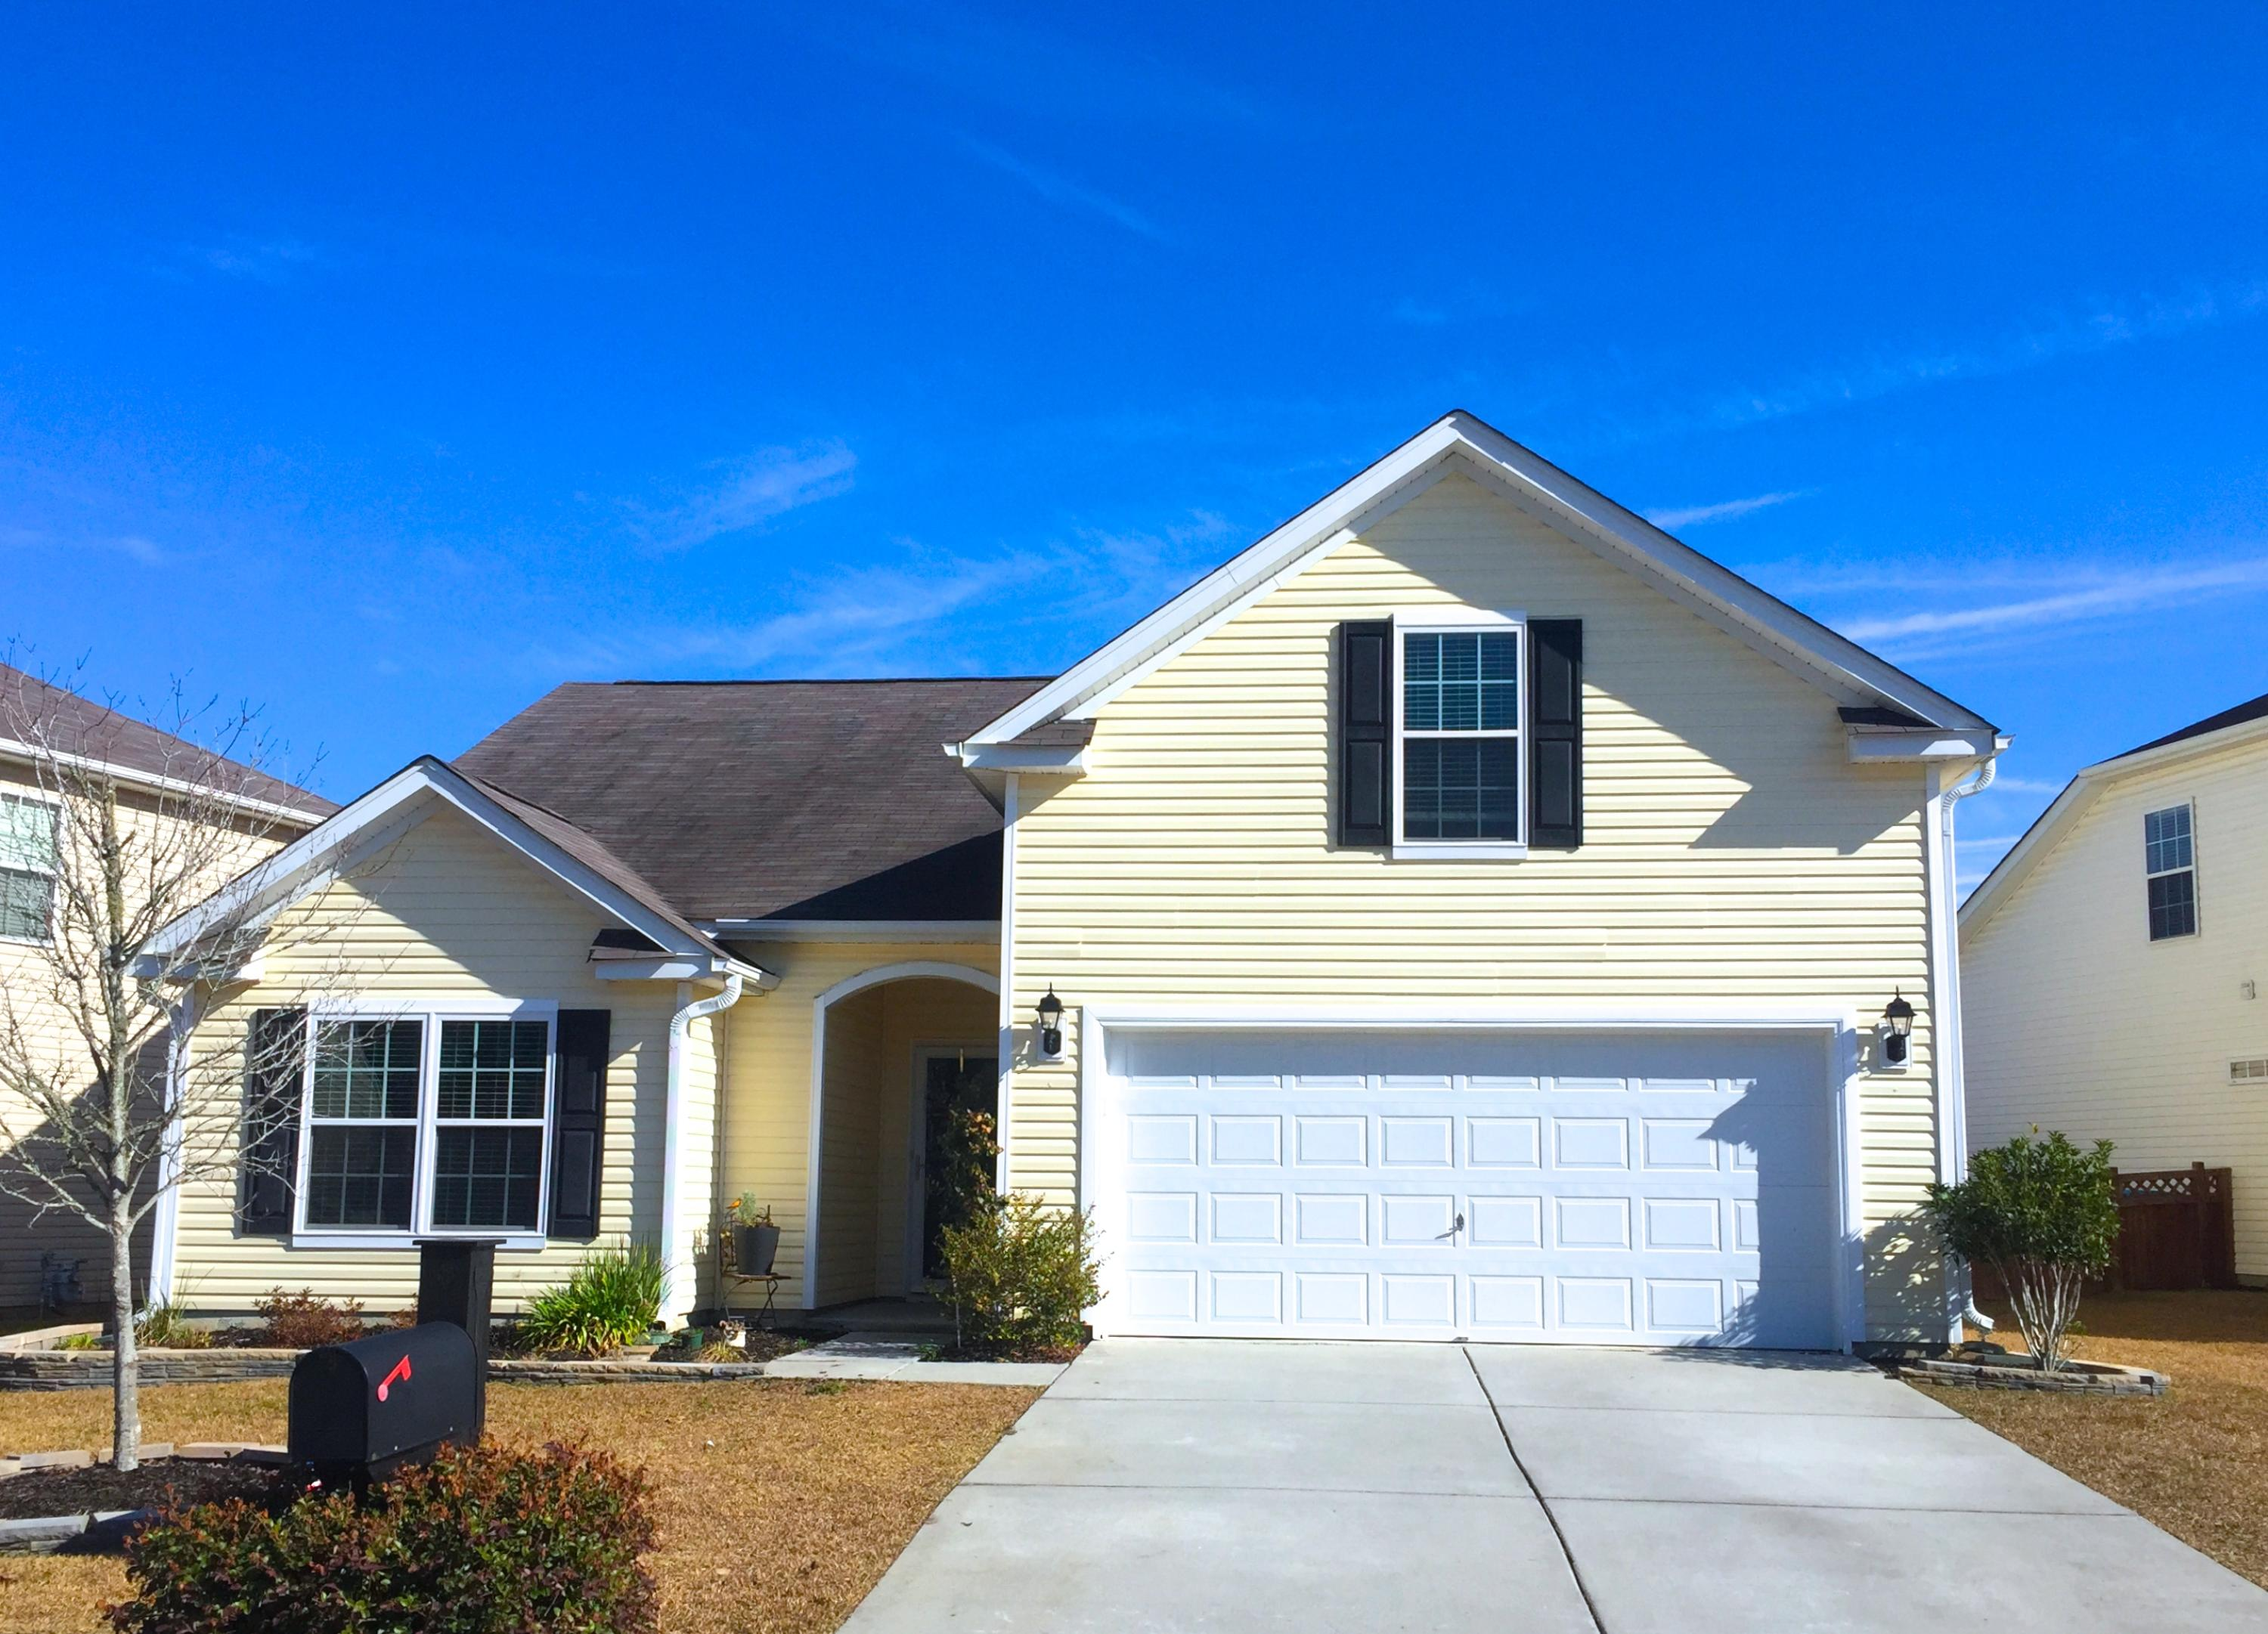 116 Killdeer Trail Summerville, Sc 29485